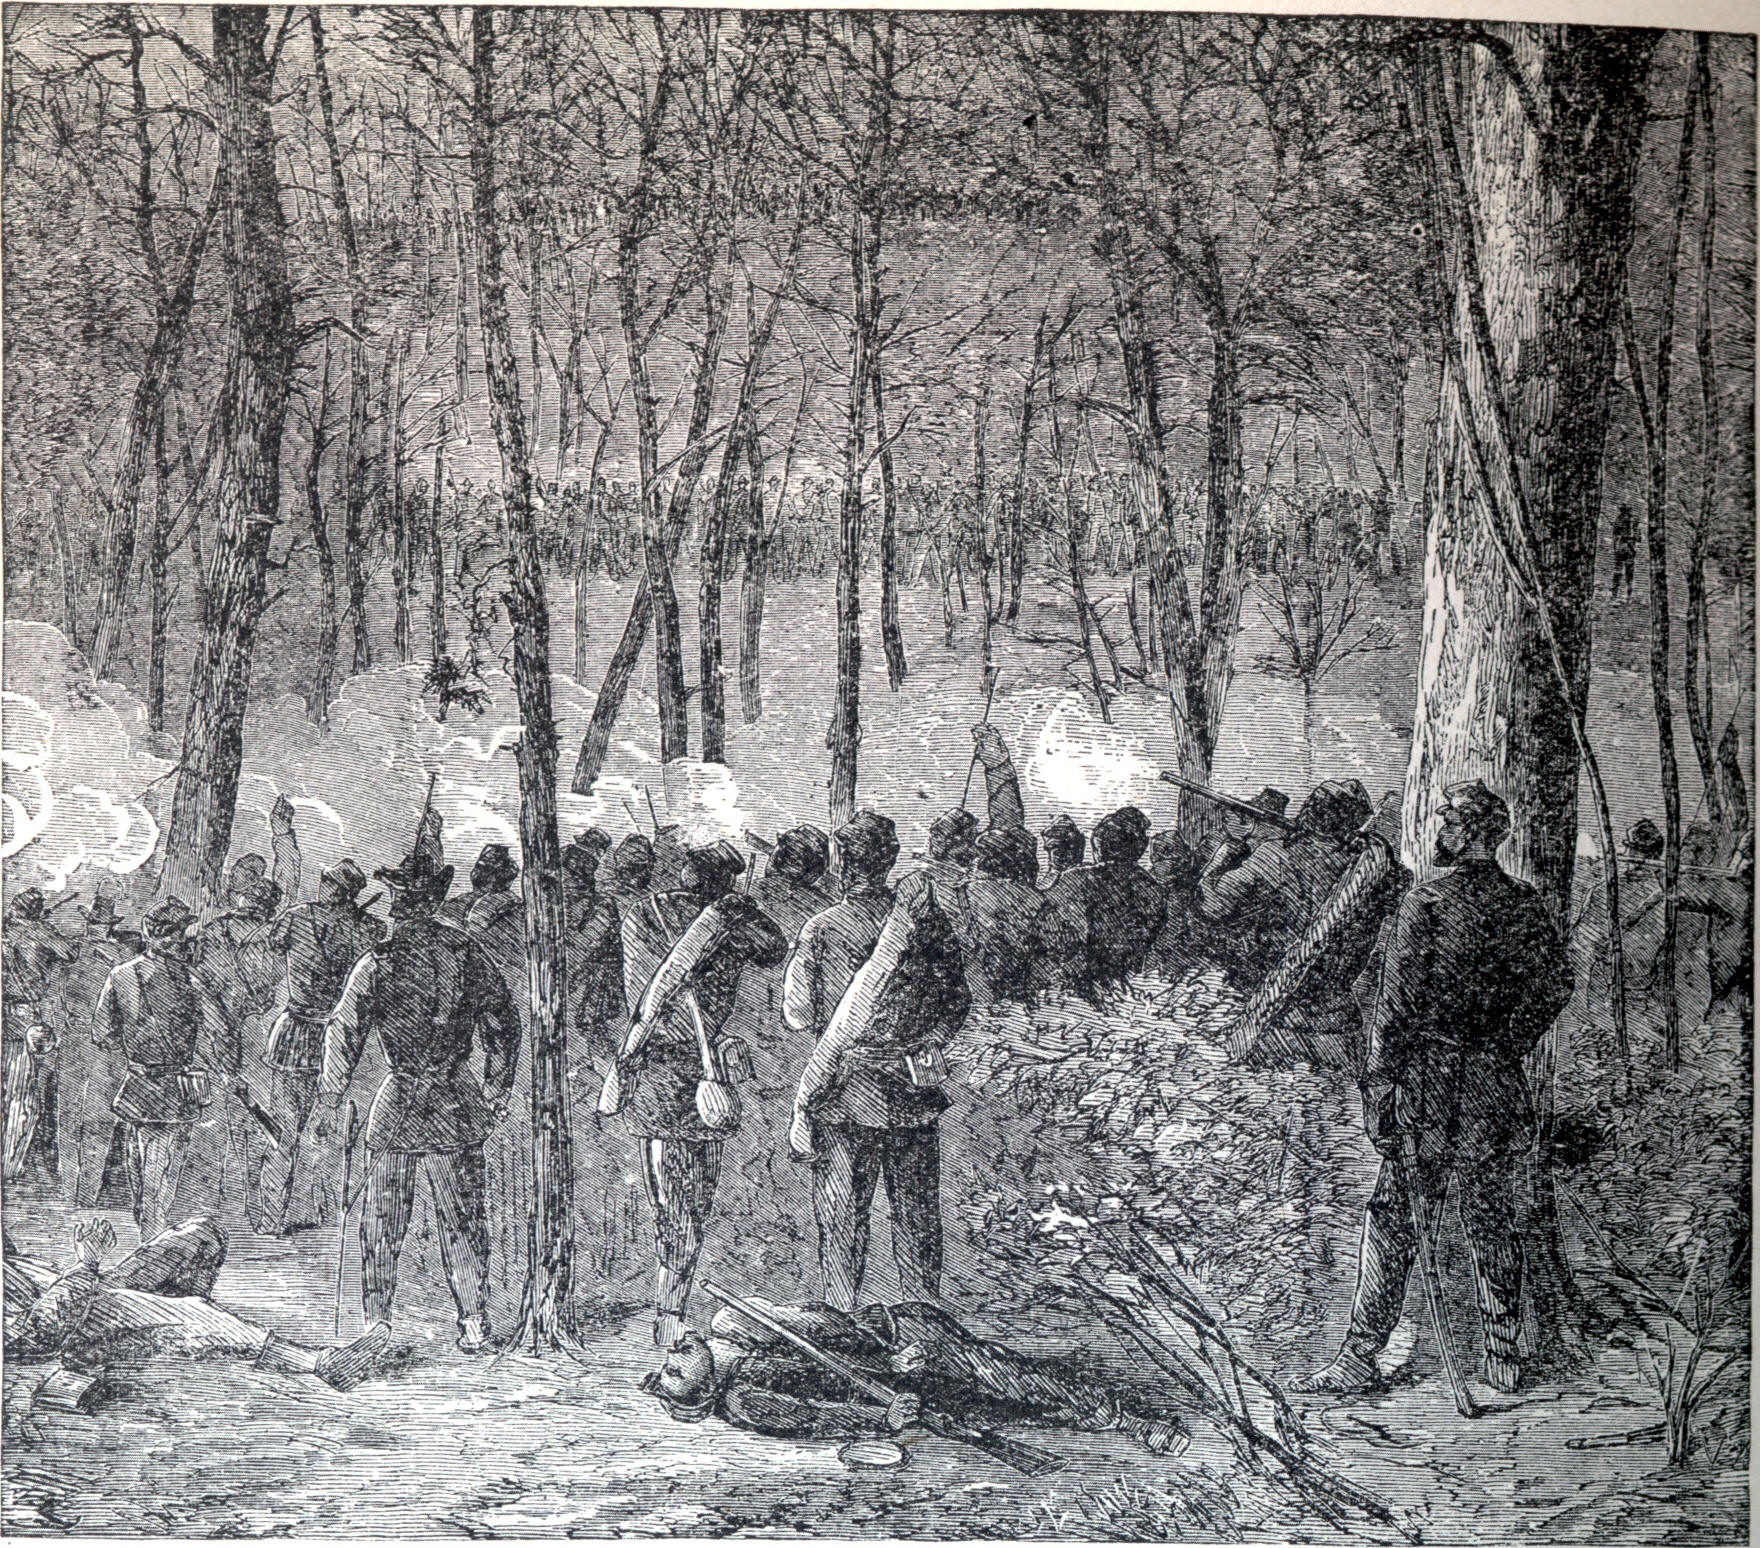 Sketch for Harper's Illustrated made during the battle